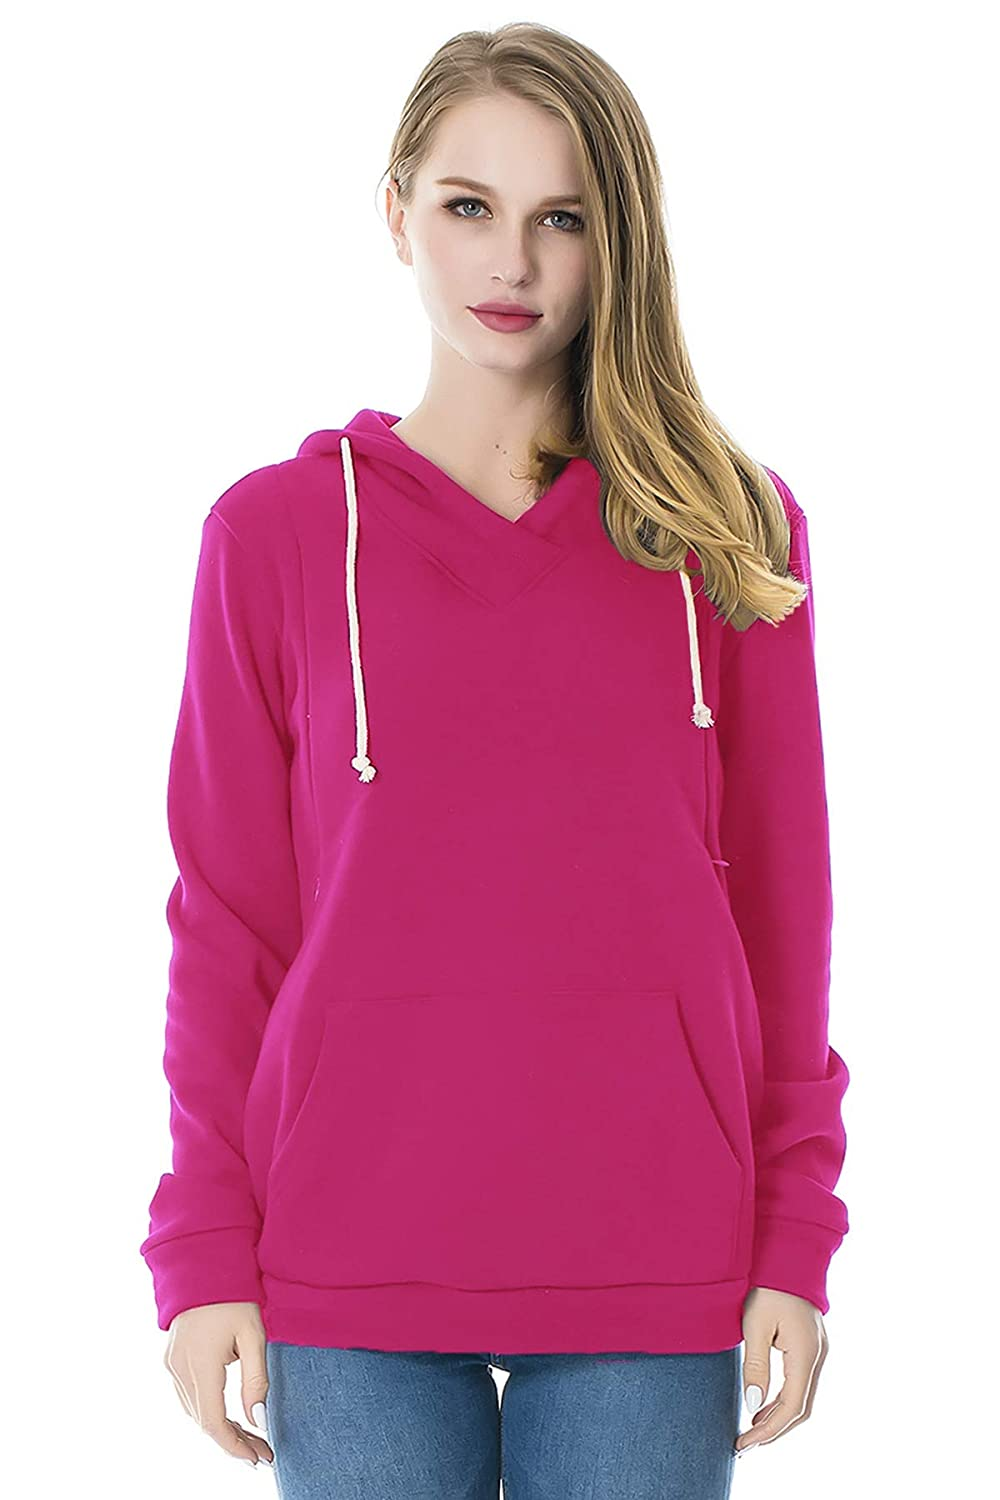 Smallshow Women's Fleece Maternity Nursing Sweatshirt Hoodie with Kangaroo Pocket